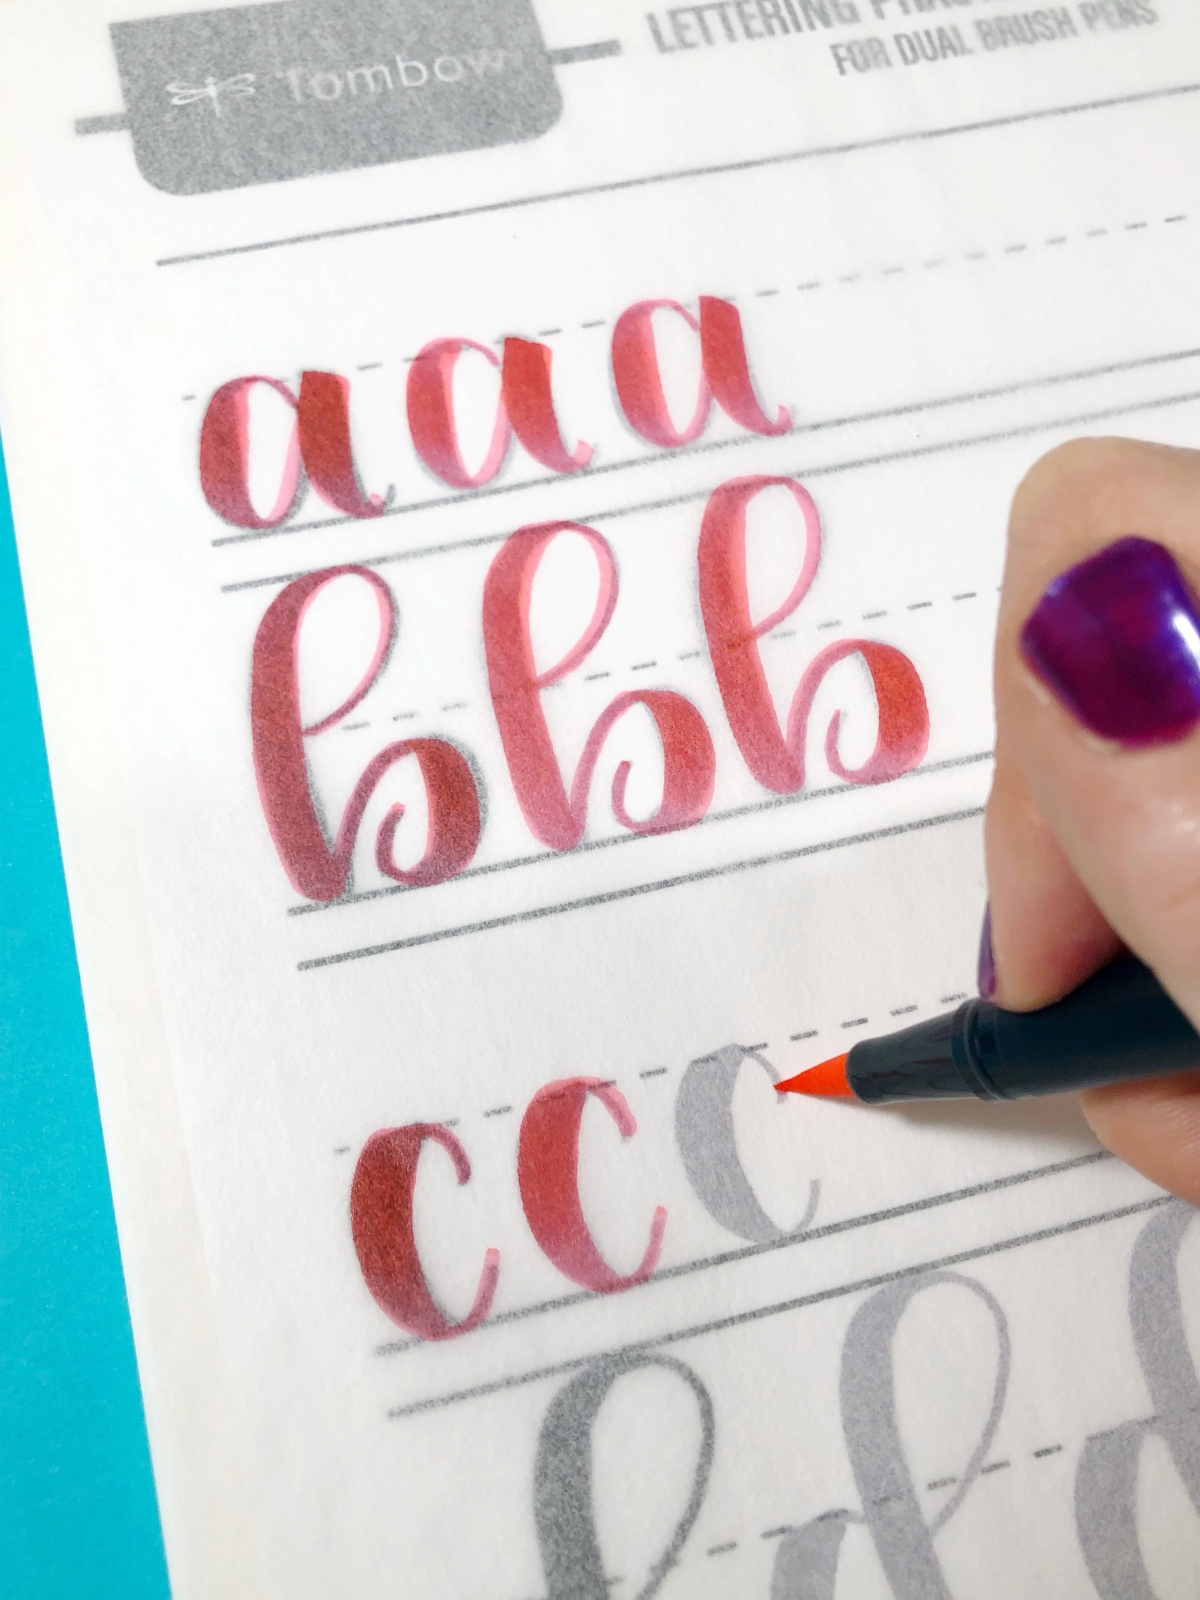 Building Lettering Confidence With Tombow And Tracing